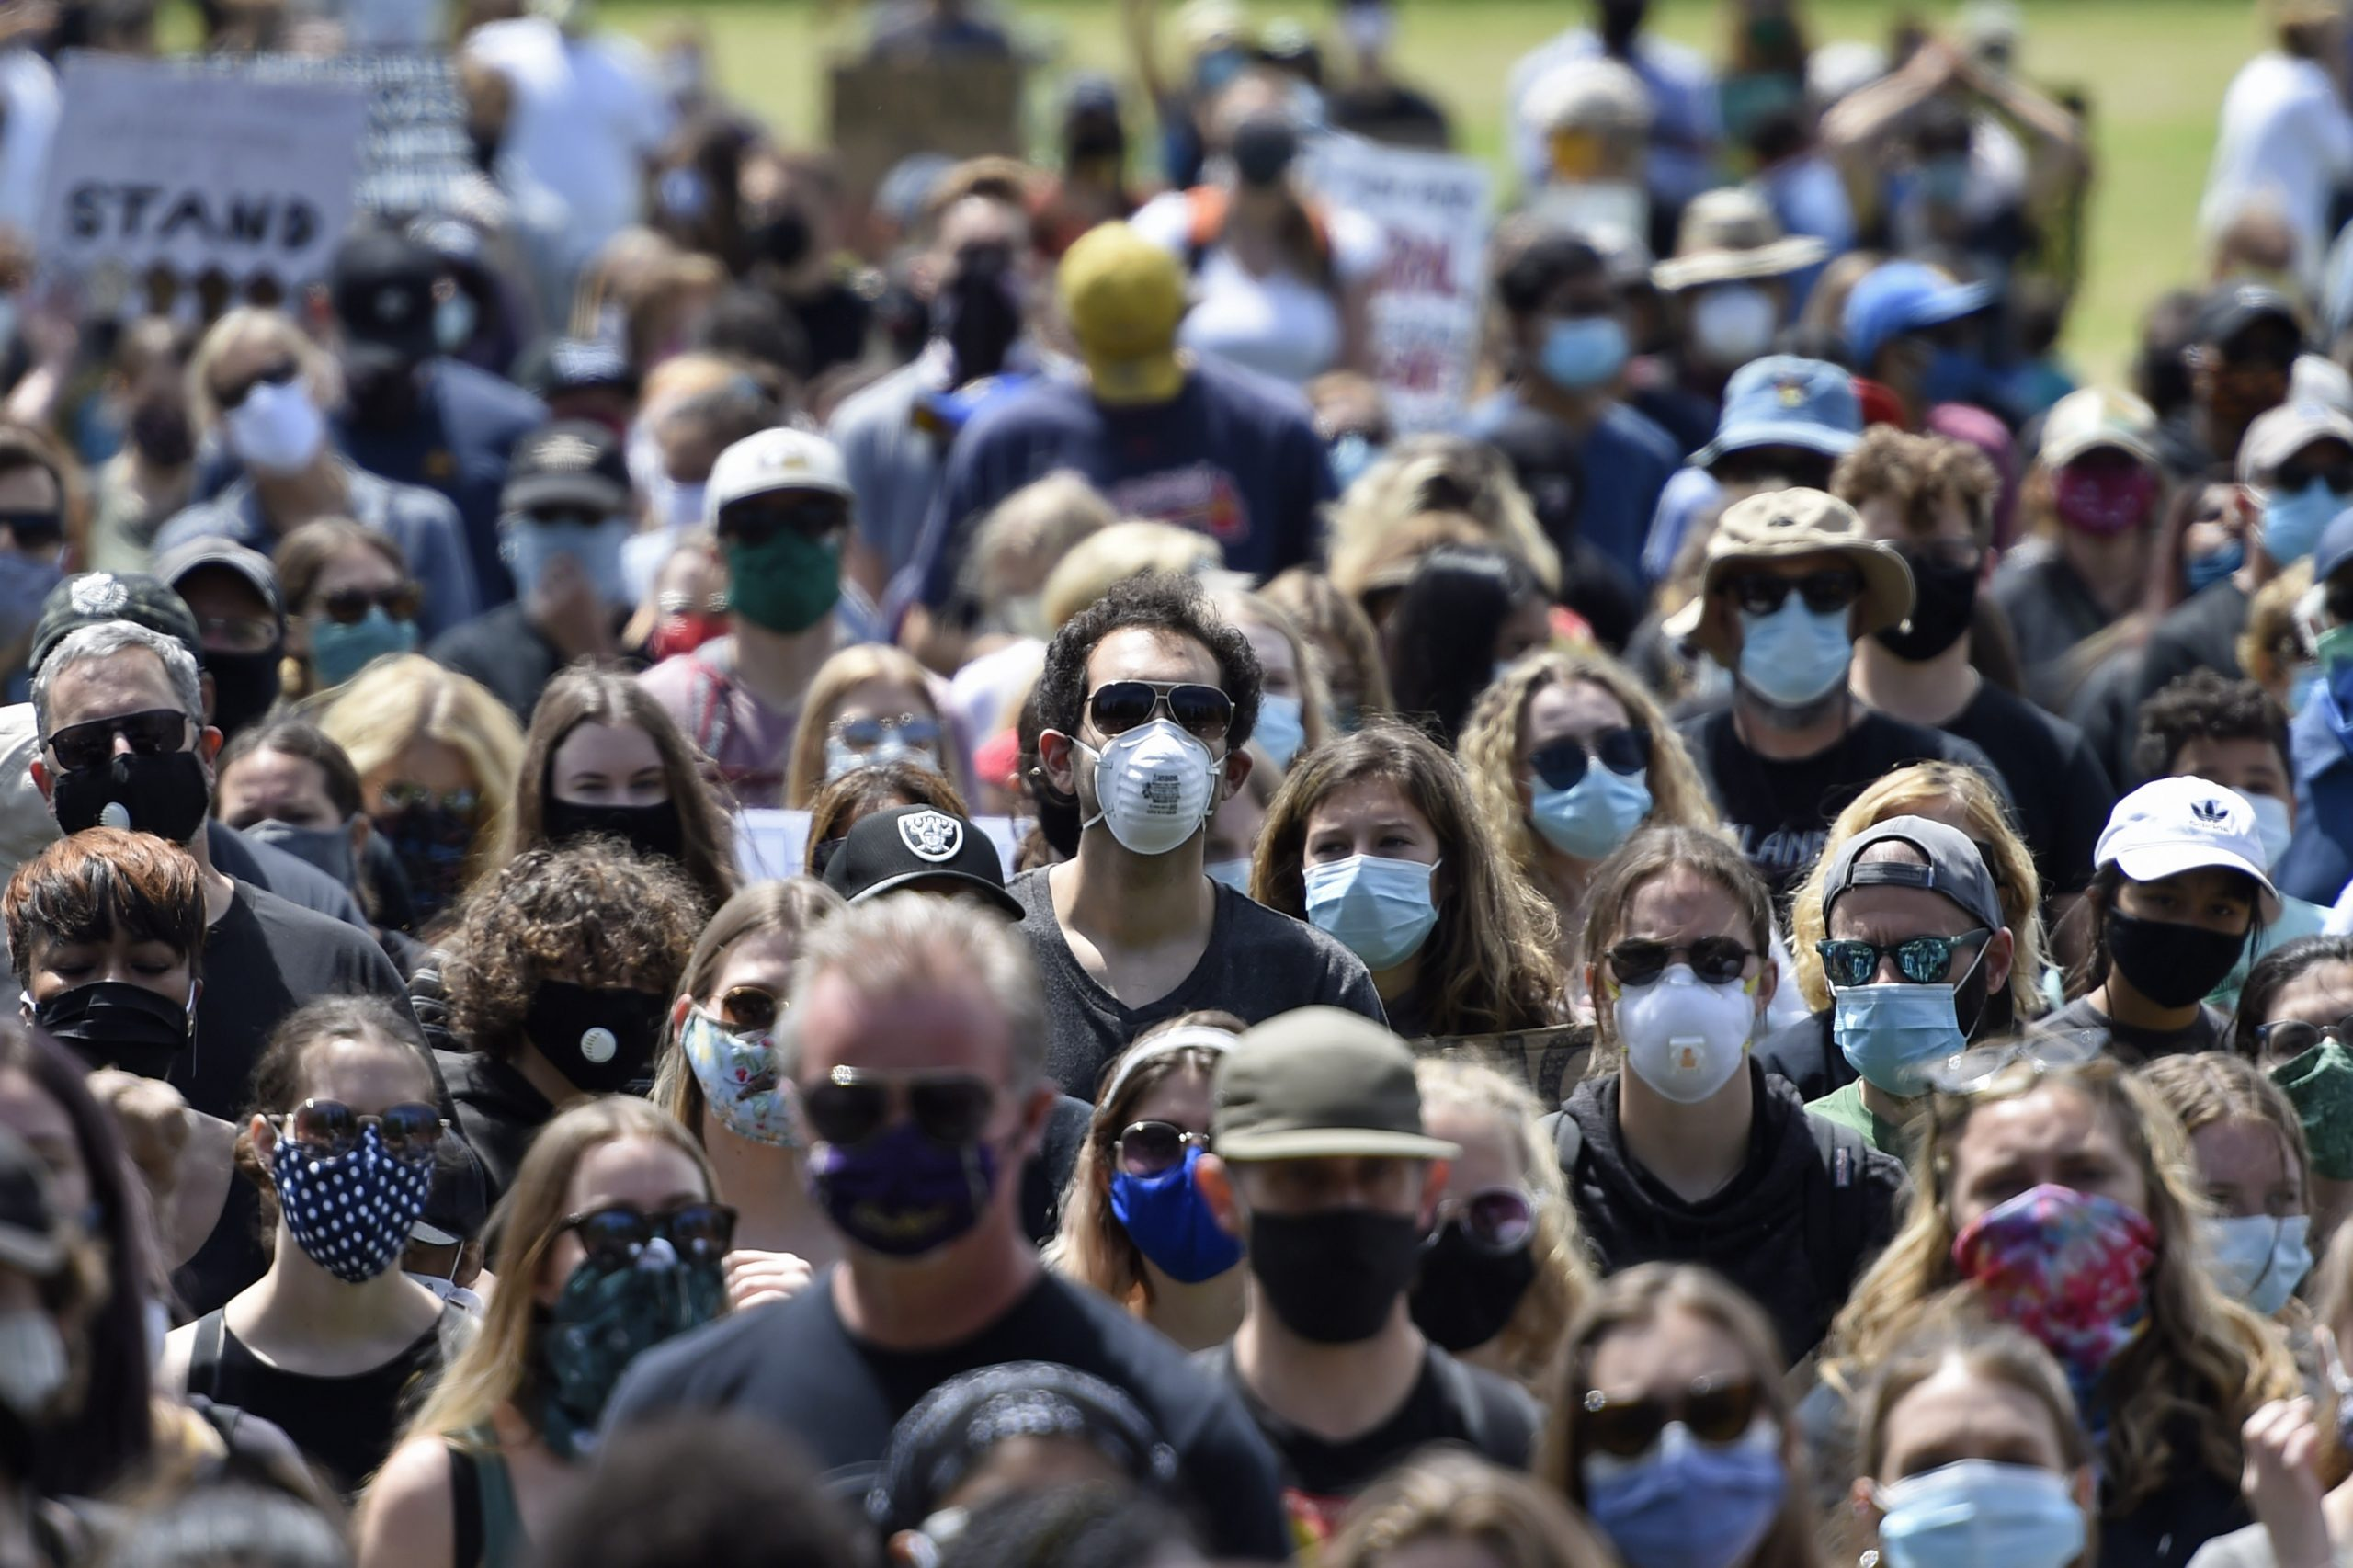 Americans using face masks during rally in the US